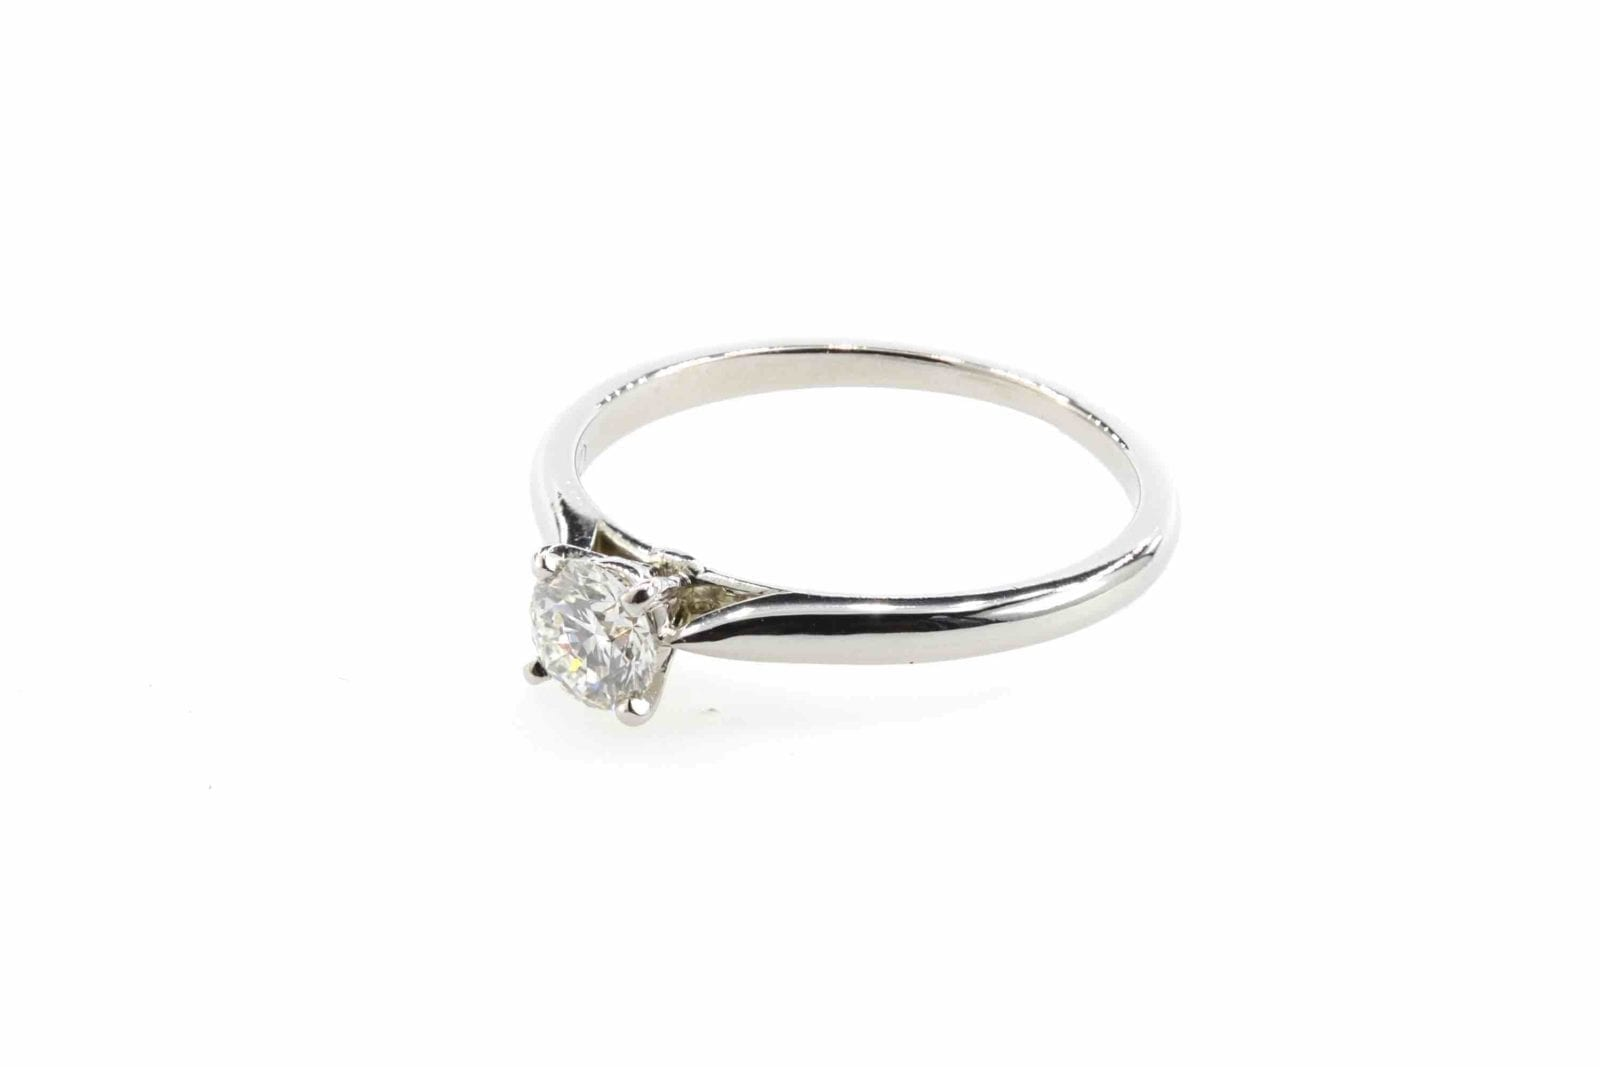 Bague solitaire 1895 Cartier diamant en platine